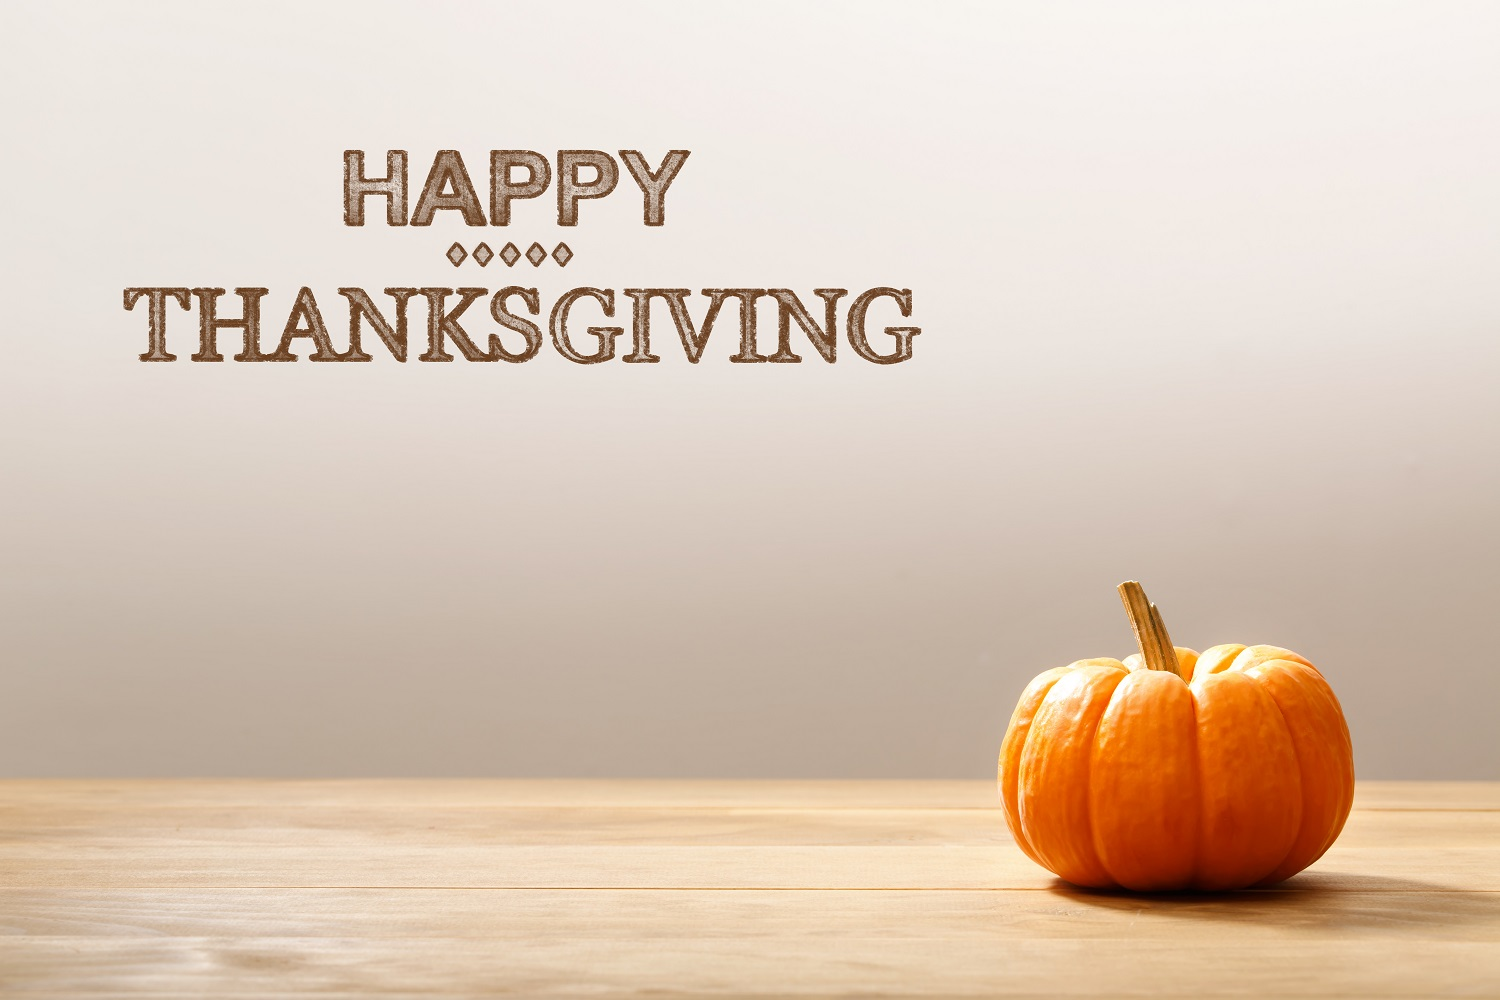 Happy Thanksgiving from our Greensboro Personal Injury Team